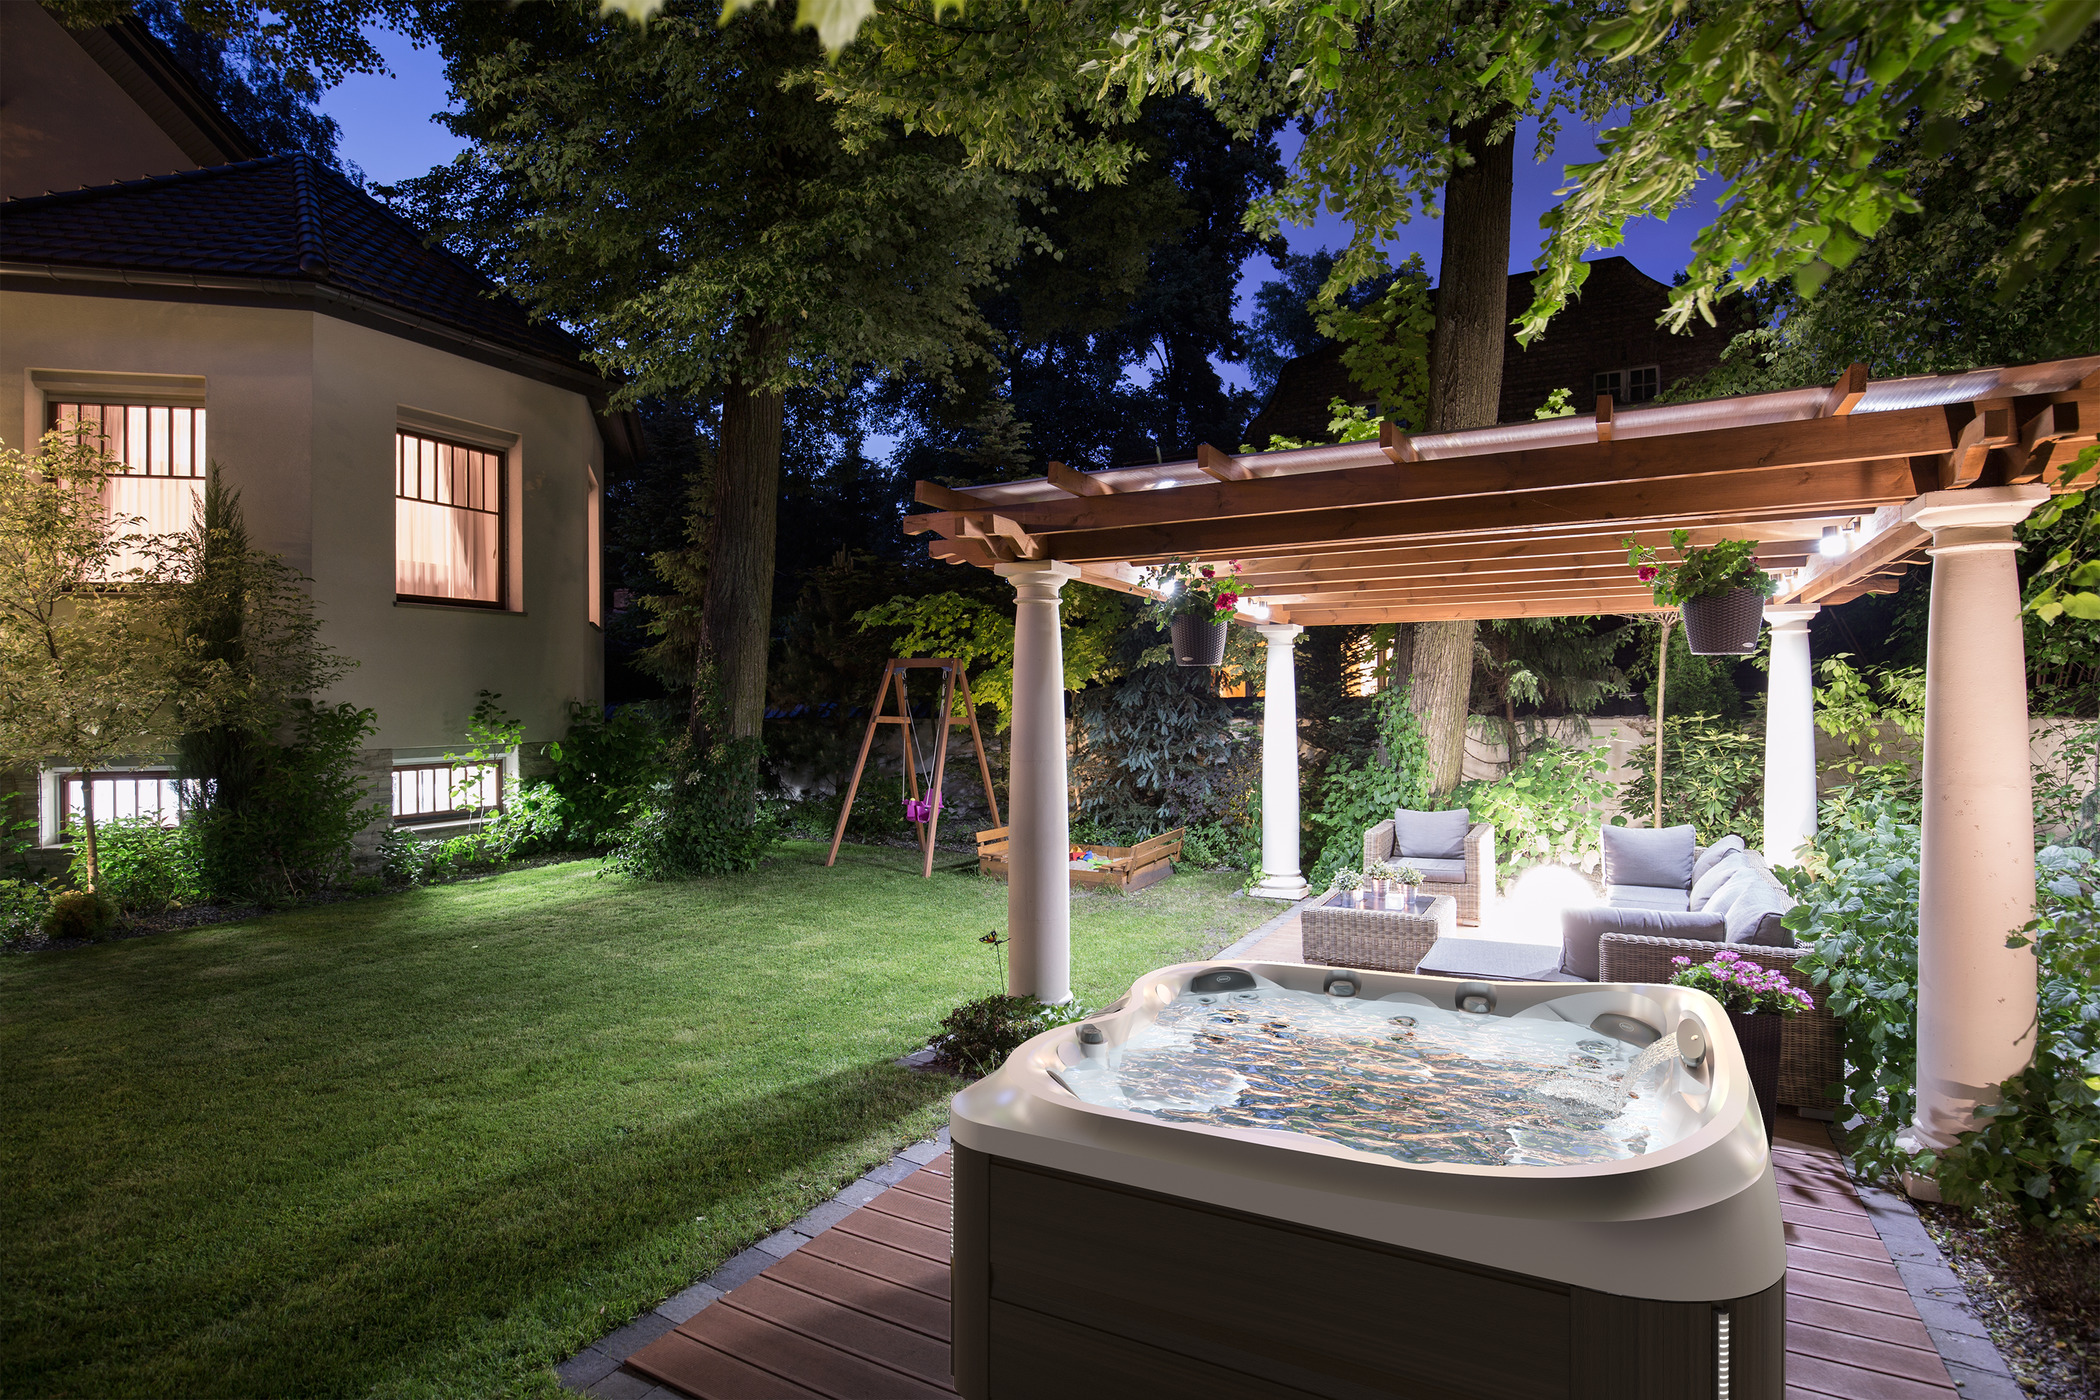 Outdoor hot tub installation at night with lights under a pergola.